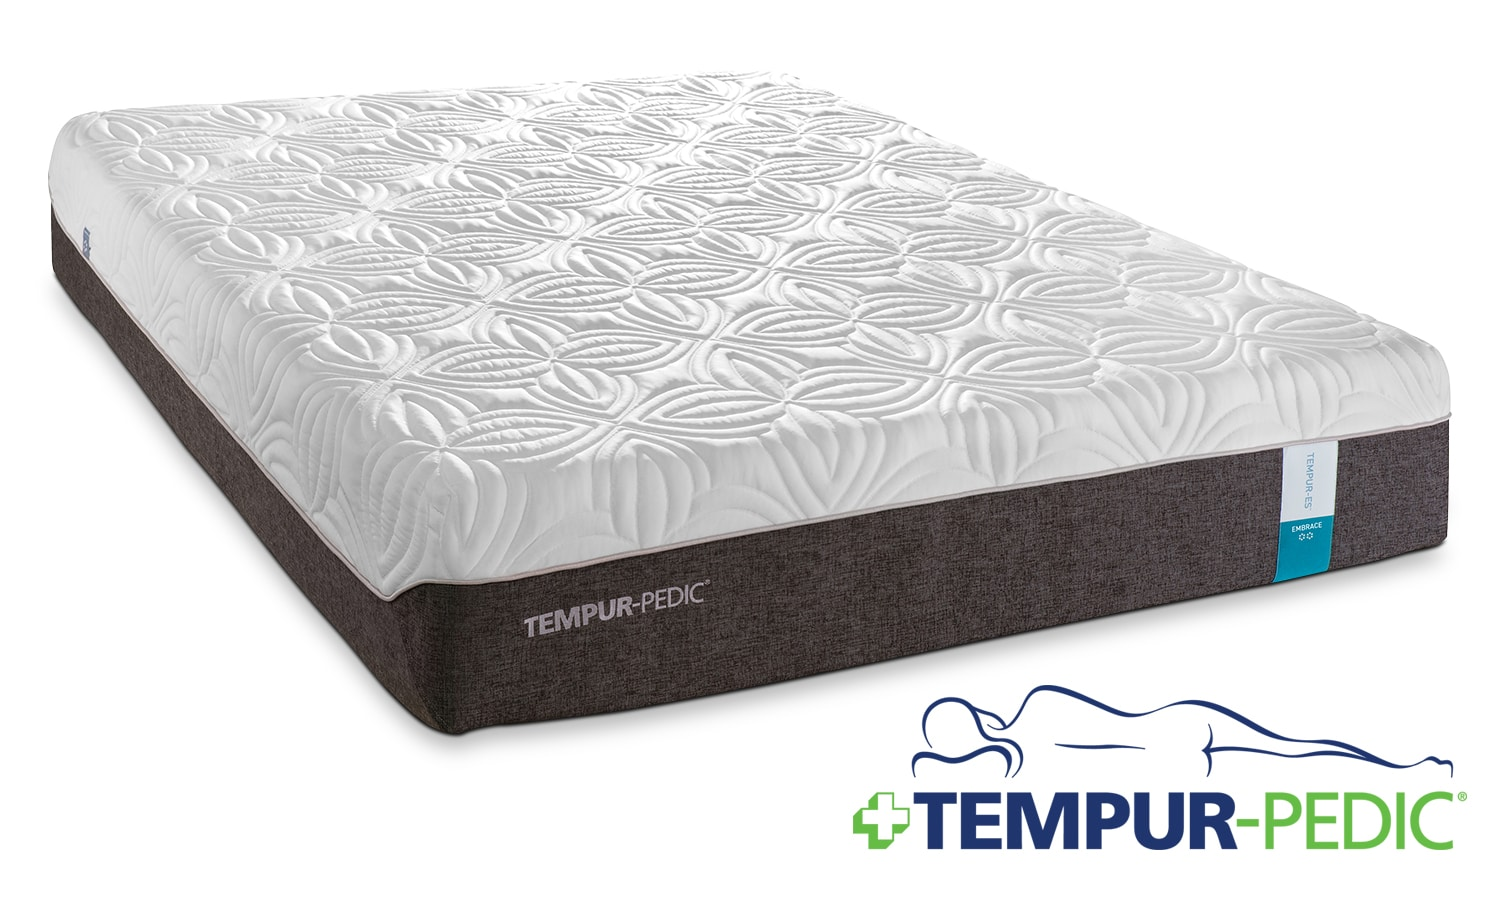 Tempur-Pedic Embrace King Mattress